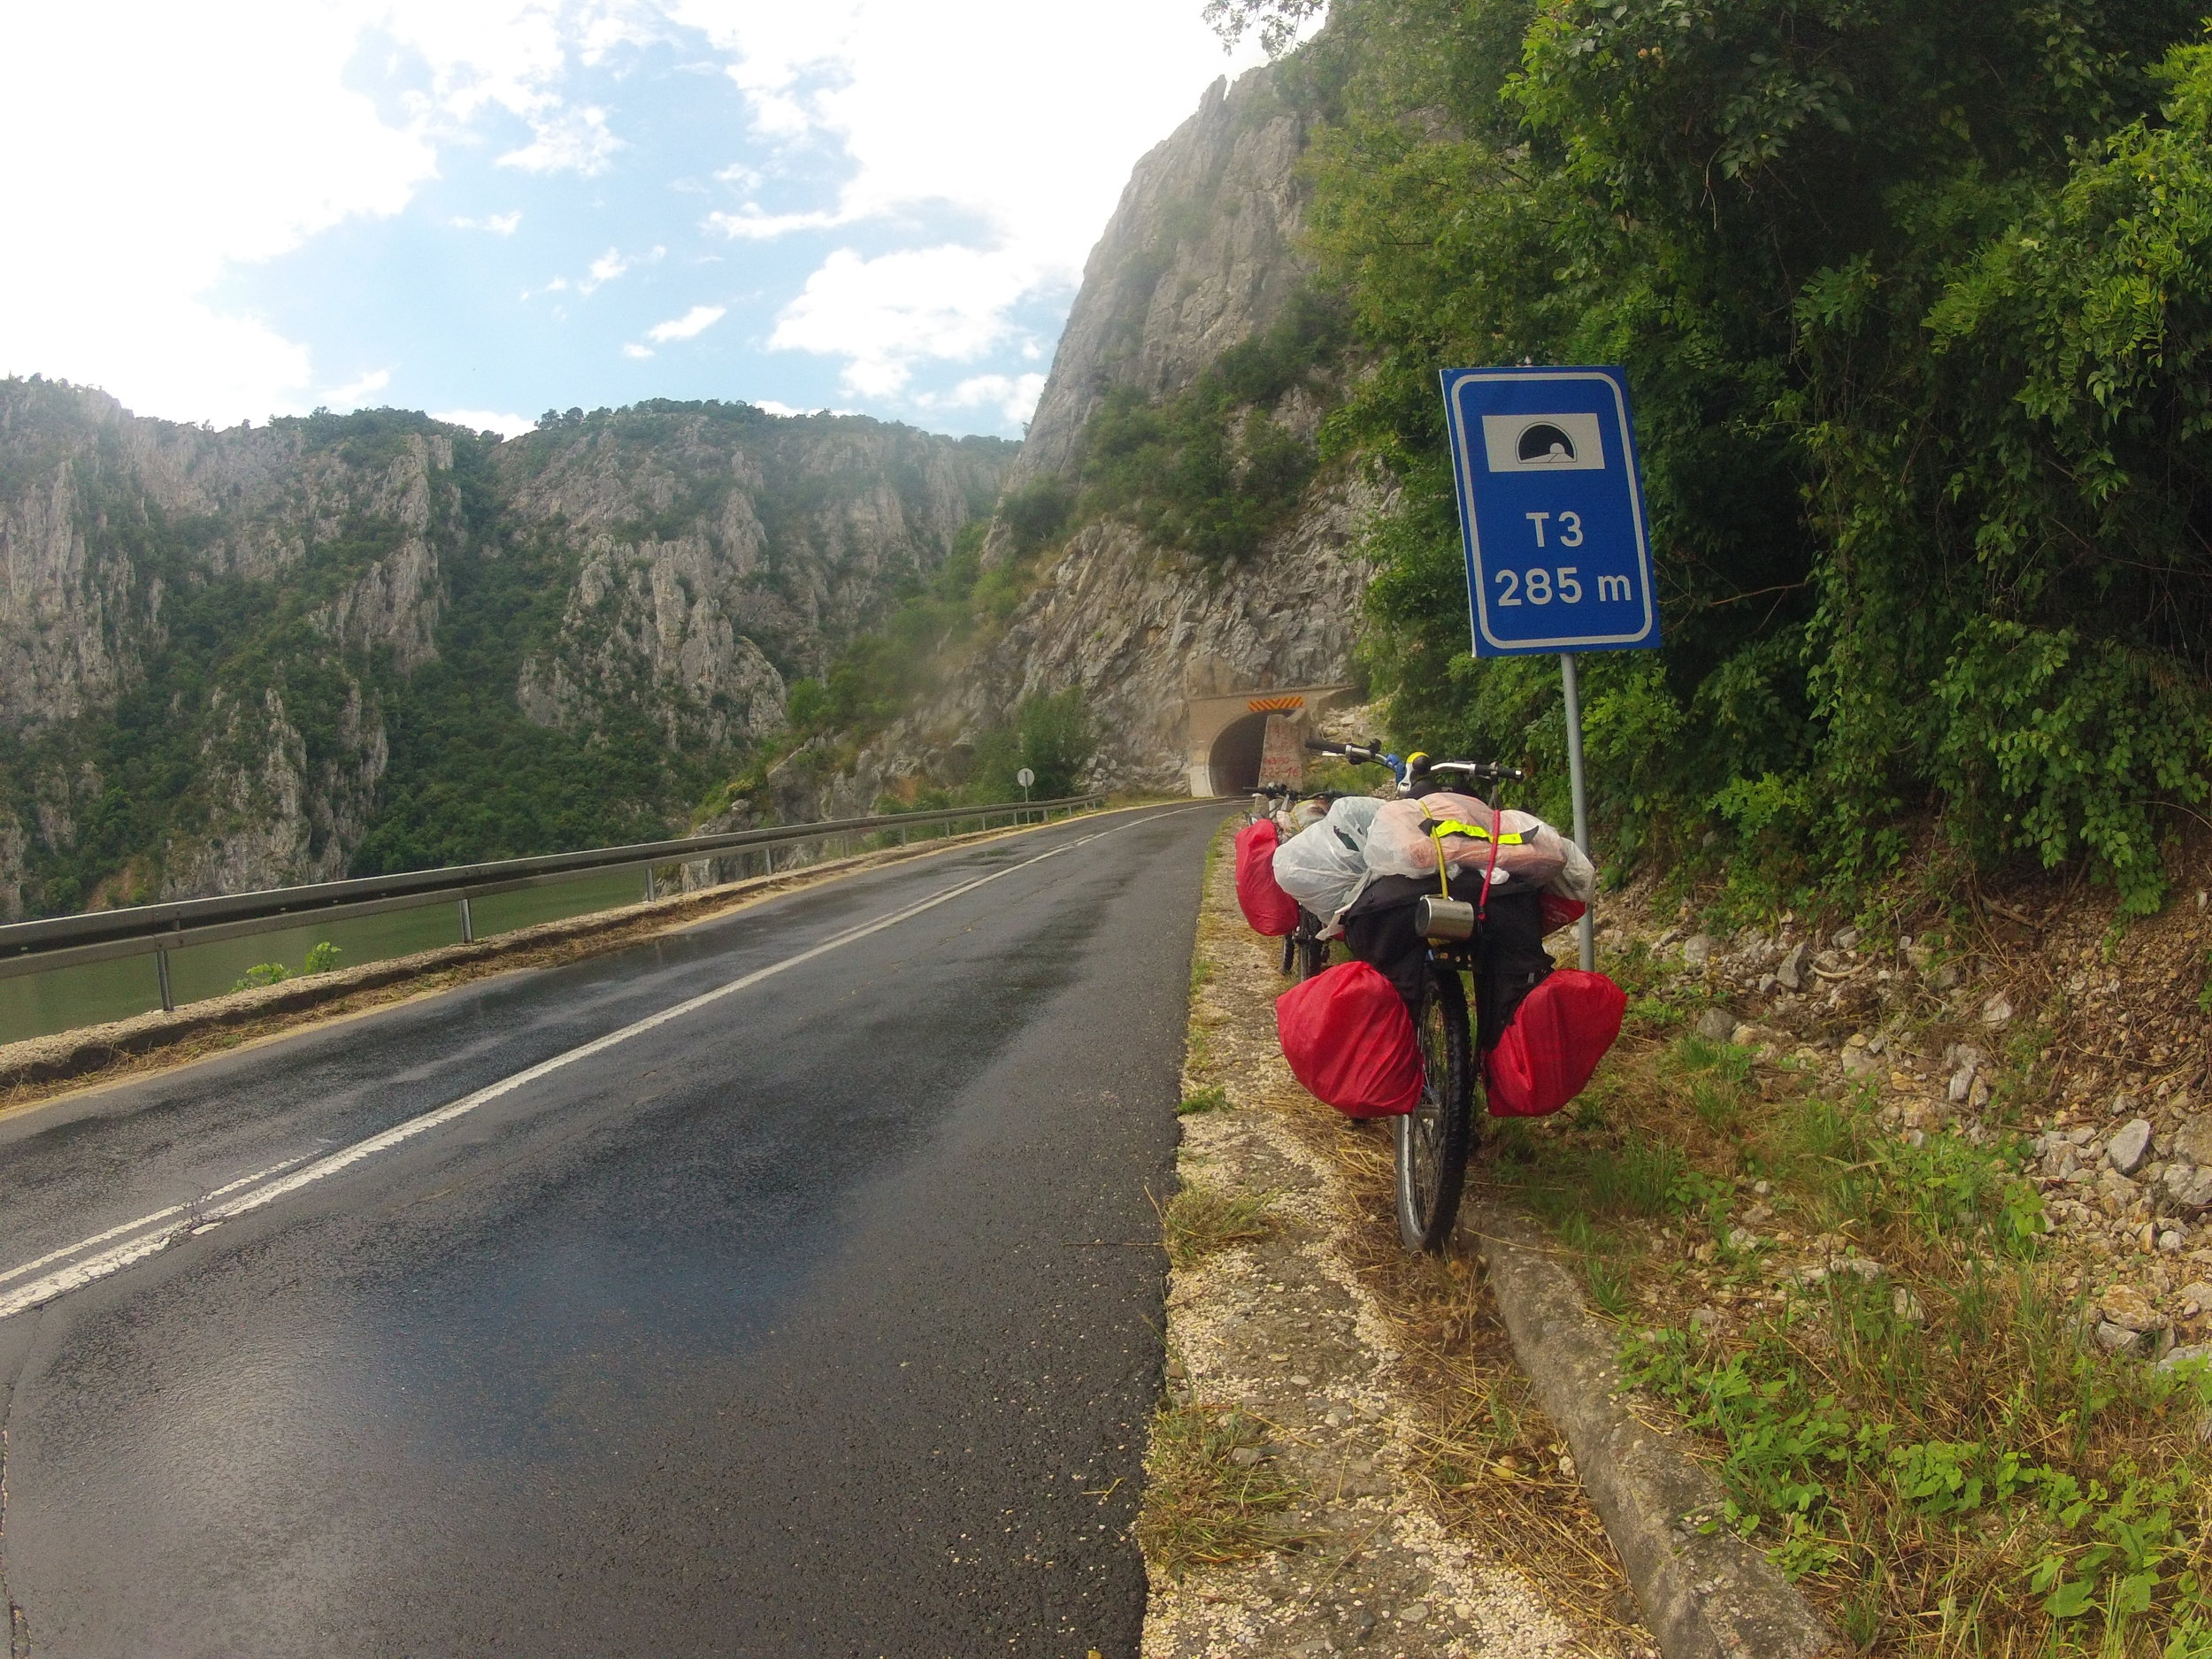 Source To Sea: Danube River - Cycling from the source of the Danube river in Donae-schingen to where it meets the sea in Constansa, Romania covering over 2000km.